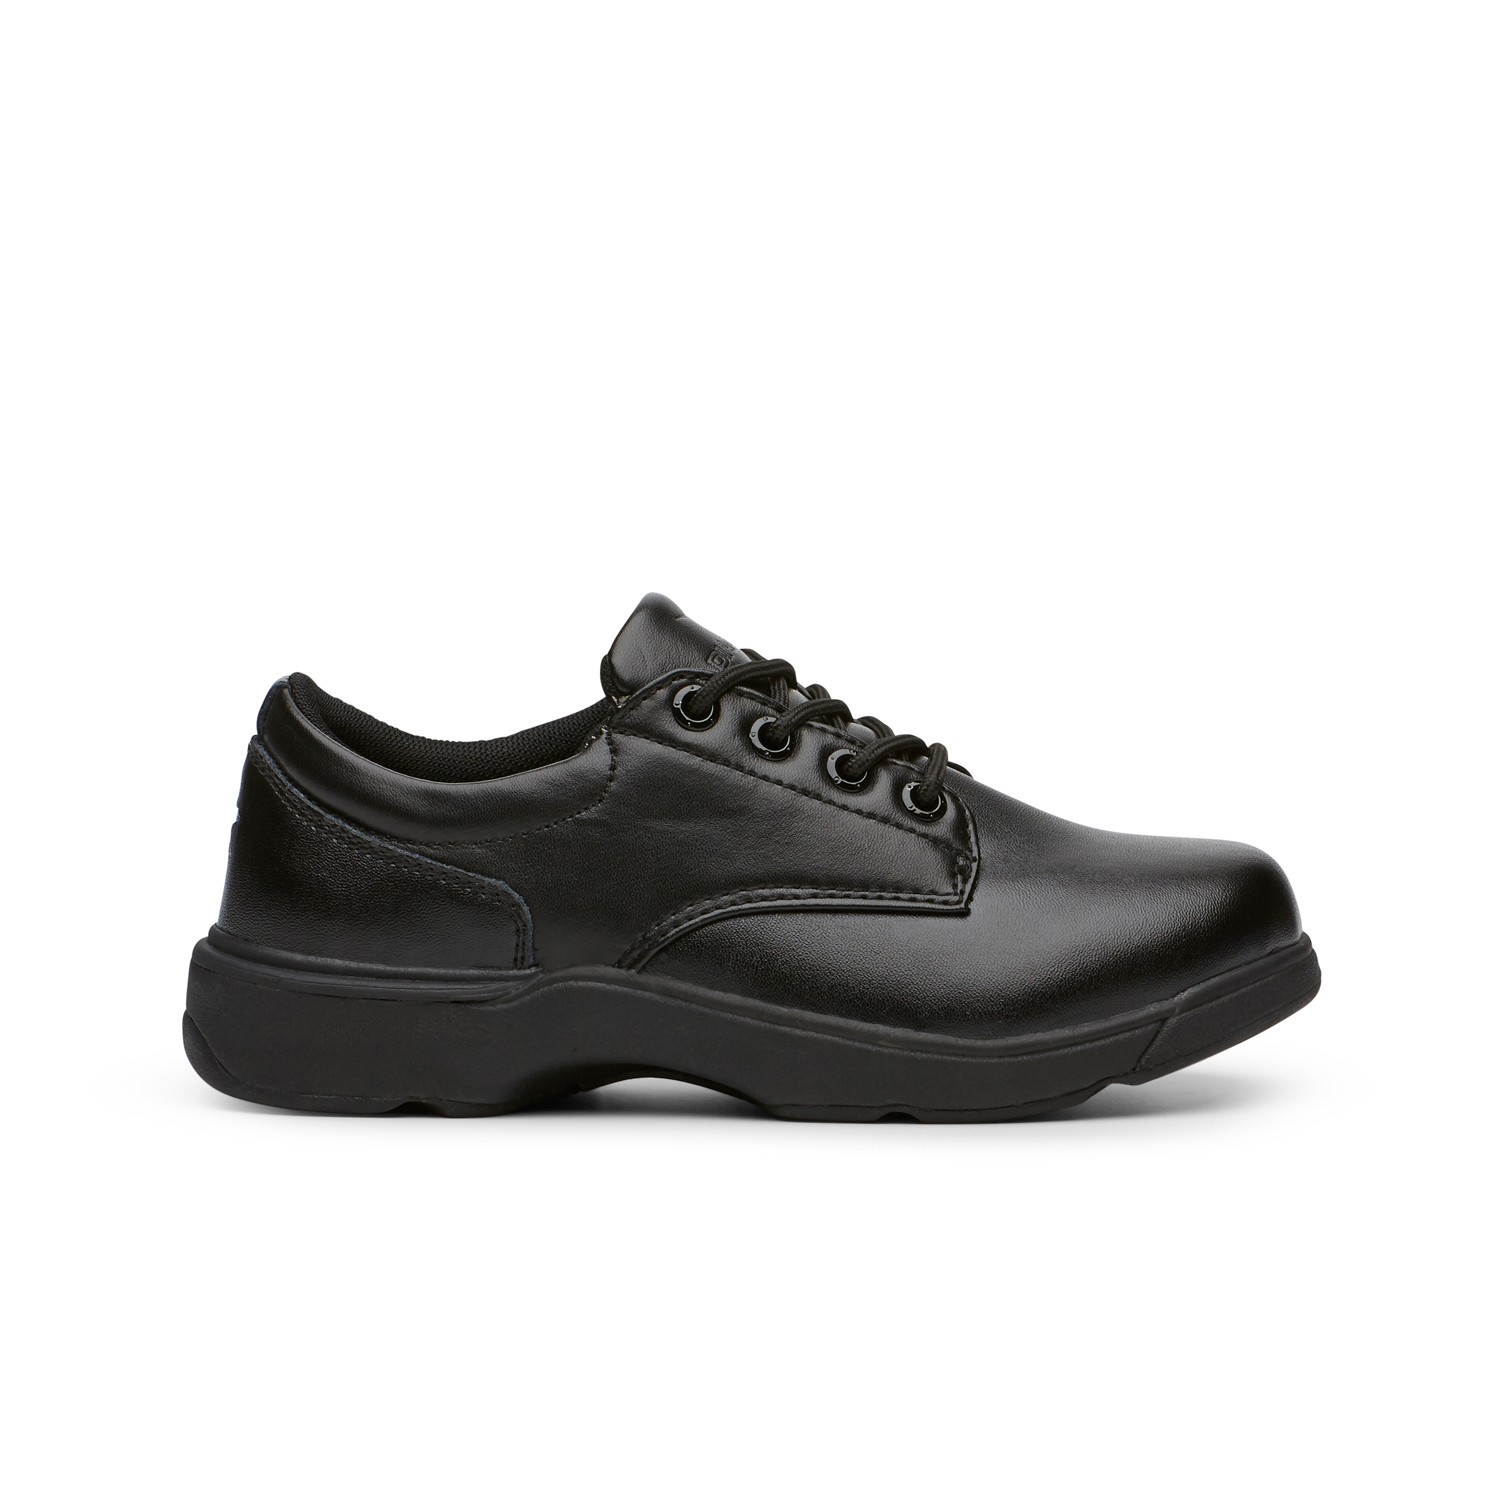 Diadora Study leather shoes for youths sizes US 2 only